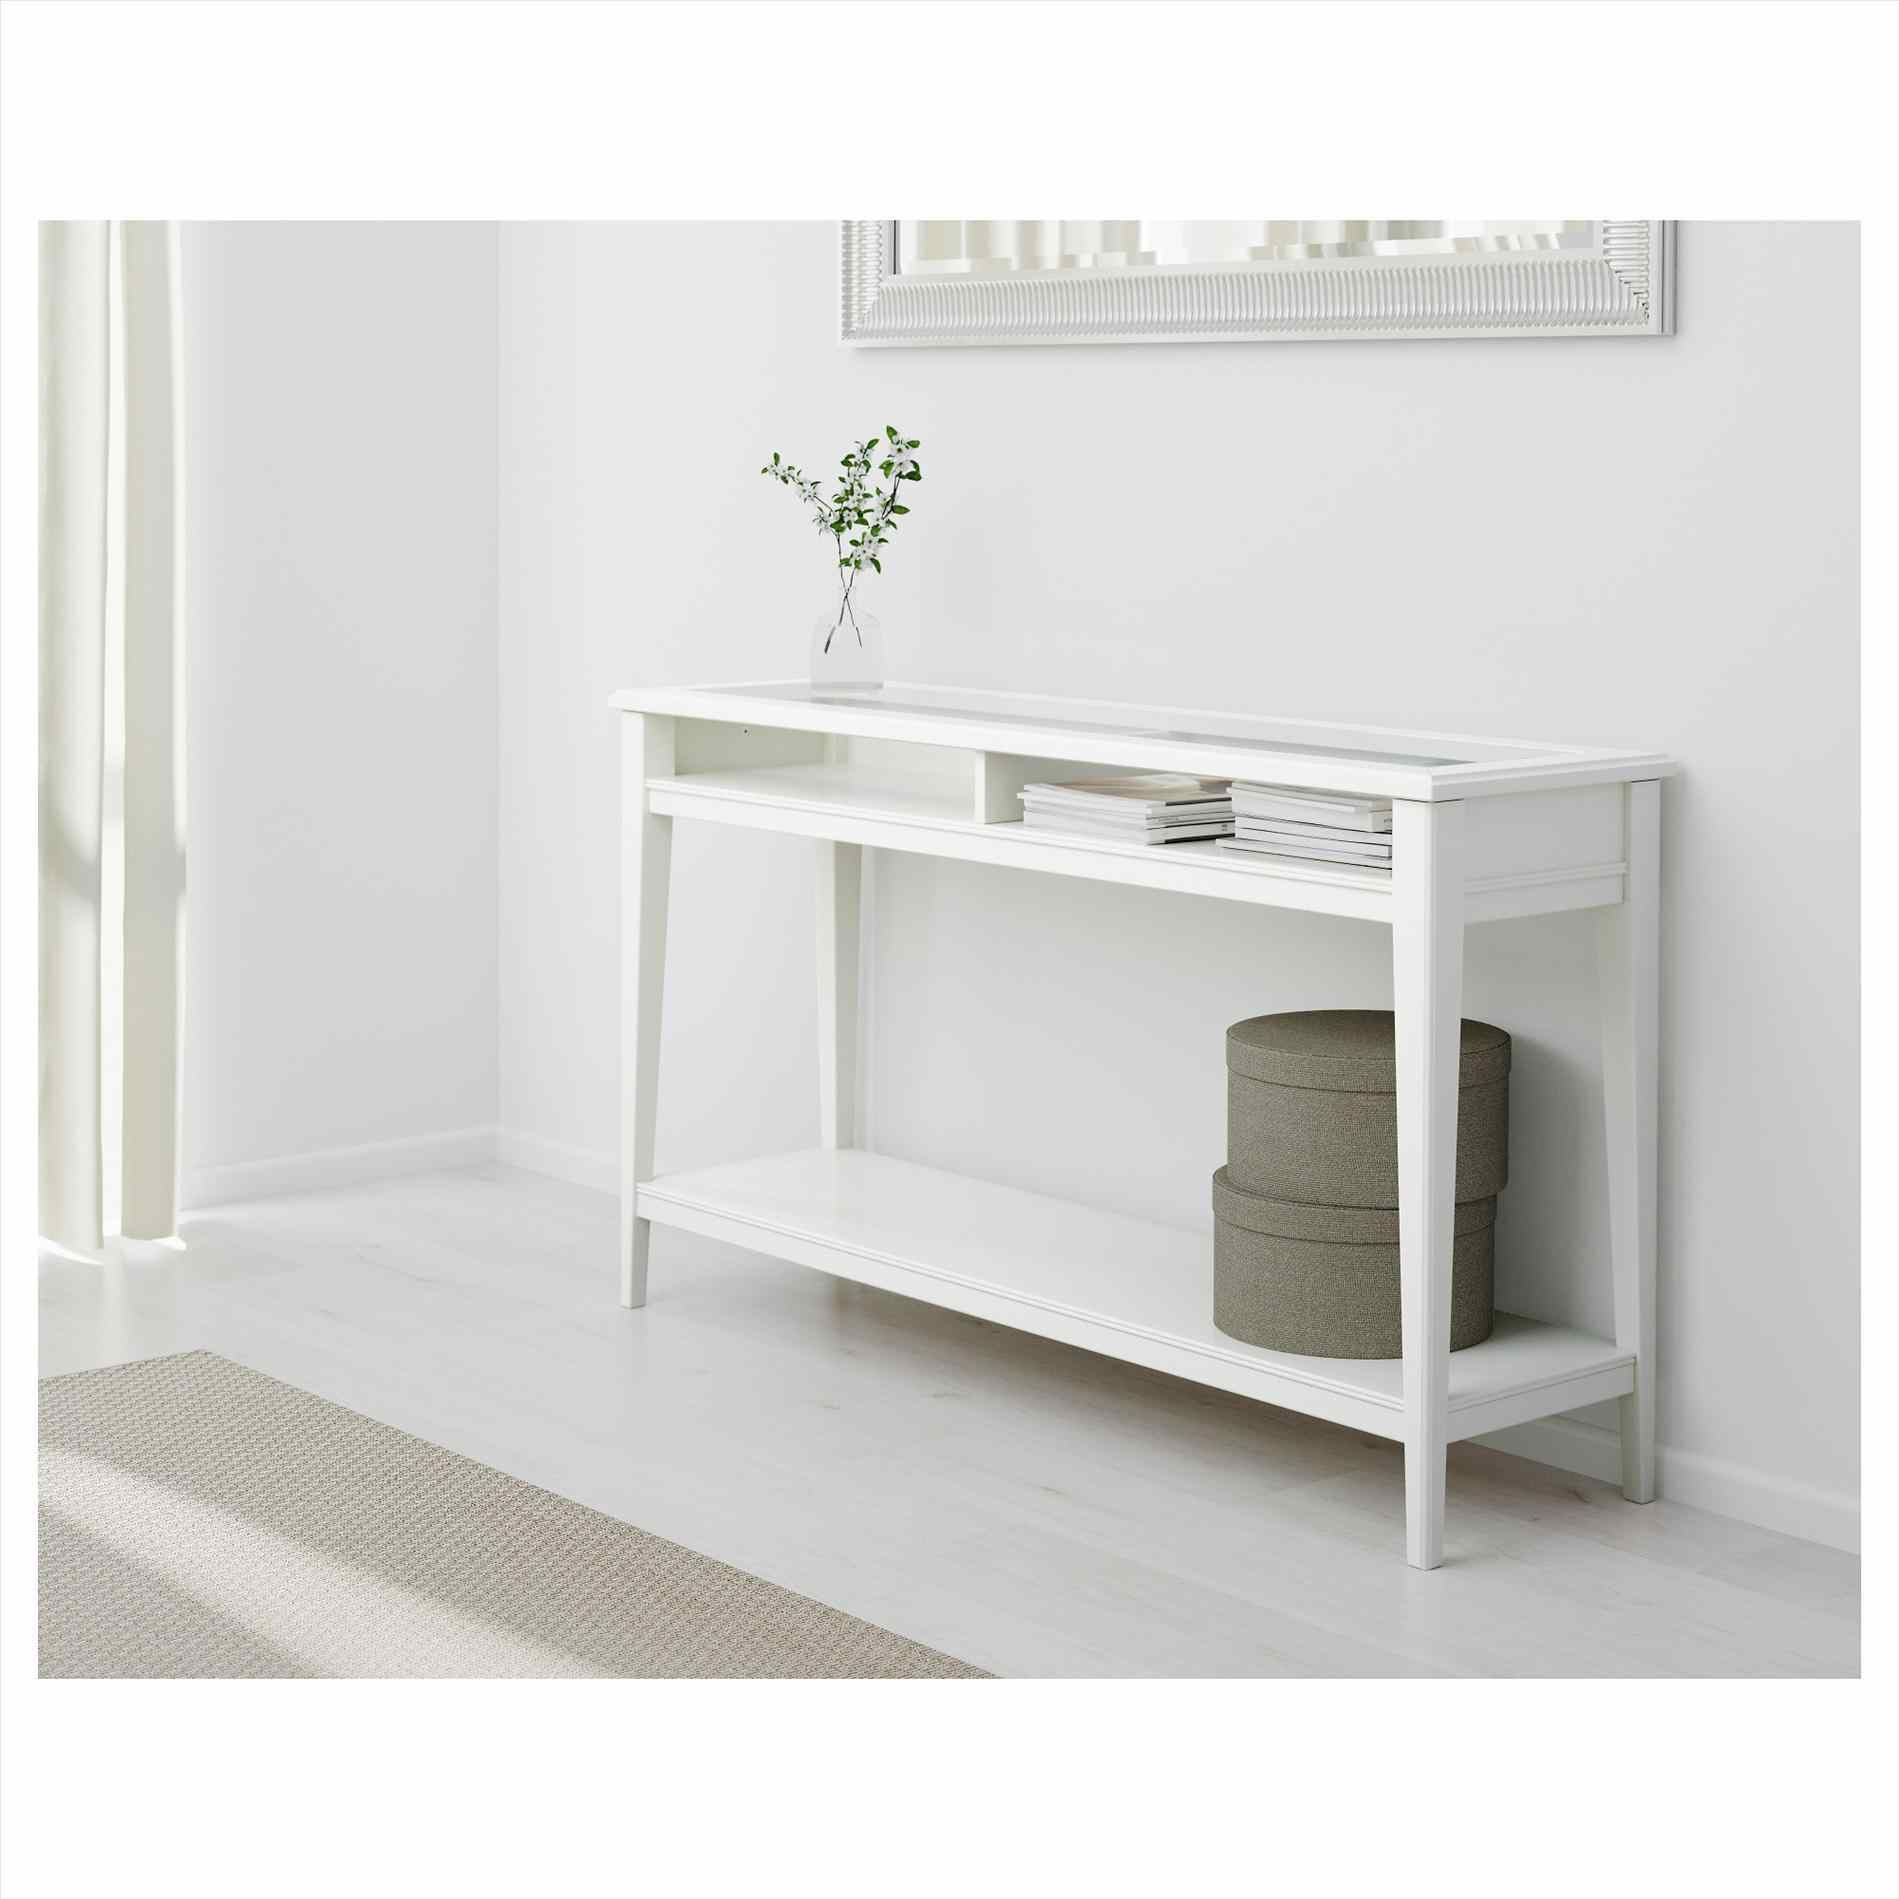 cool hemnes sofa table construction-Lovely Hemnes sofa Table Layout